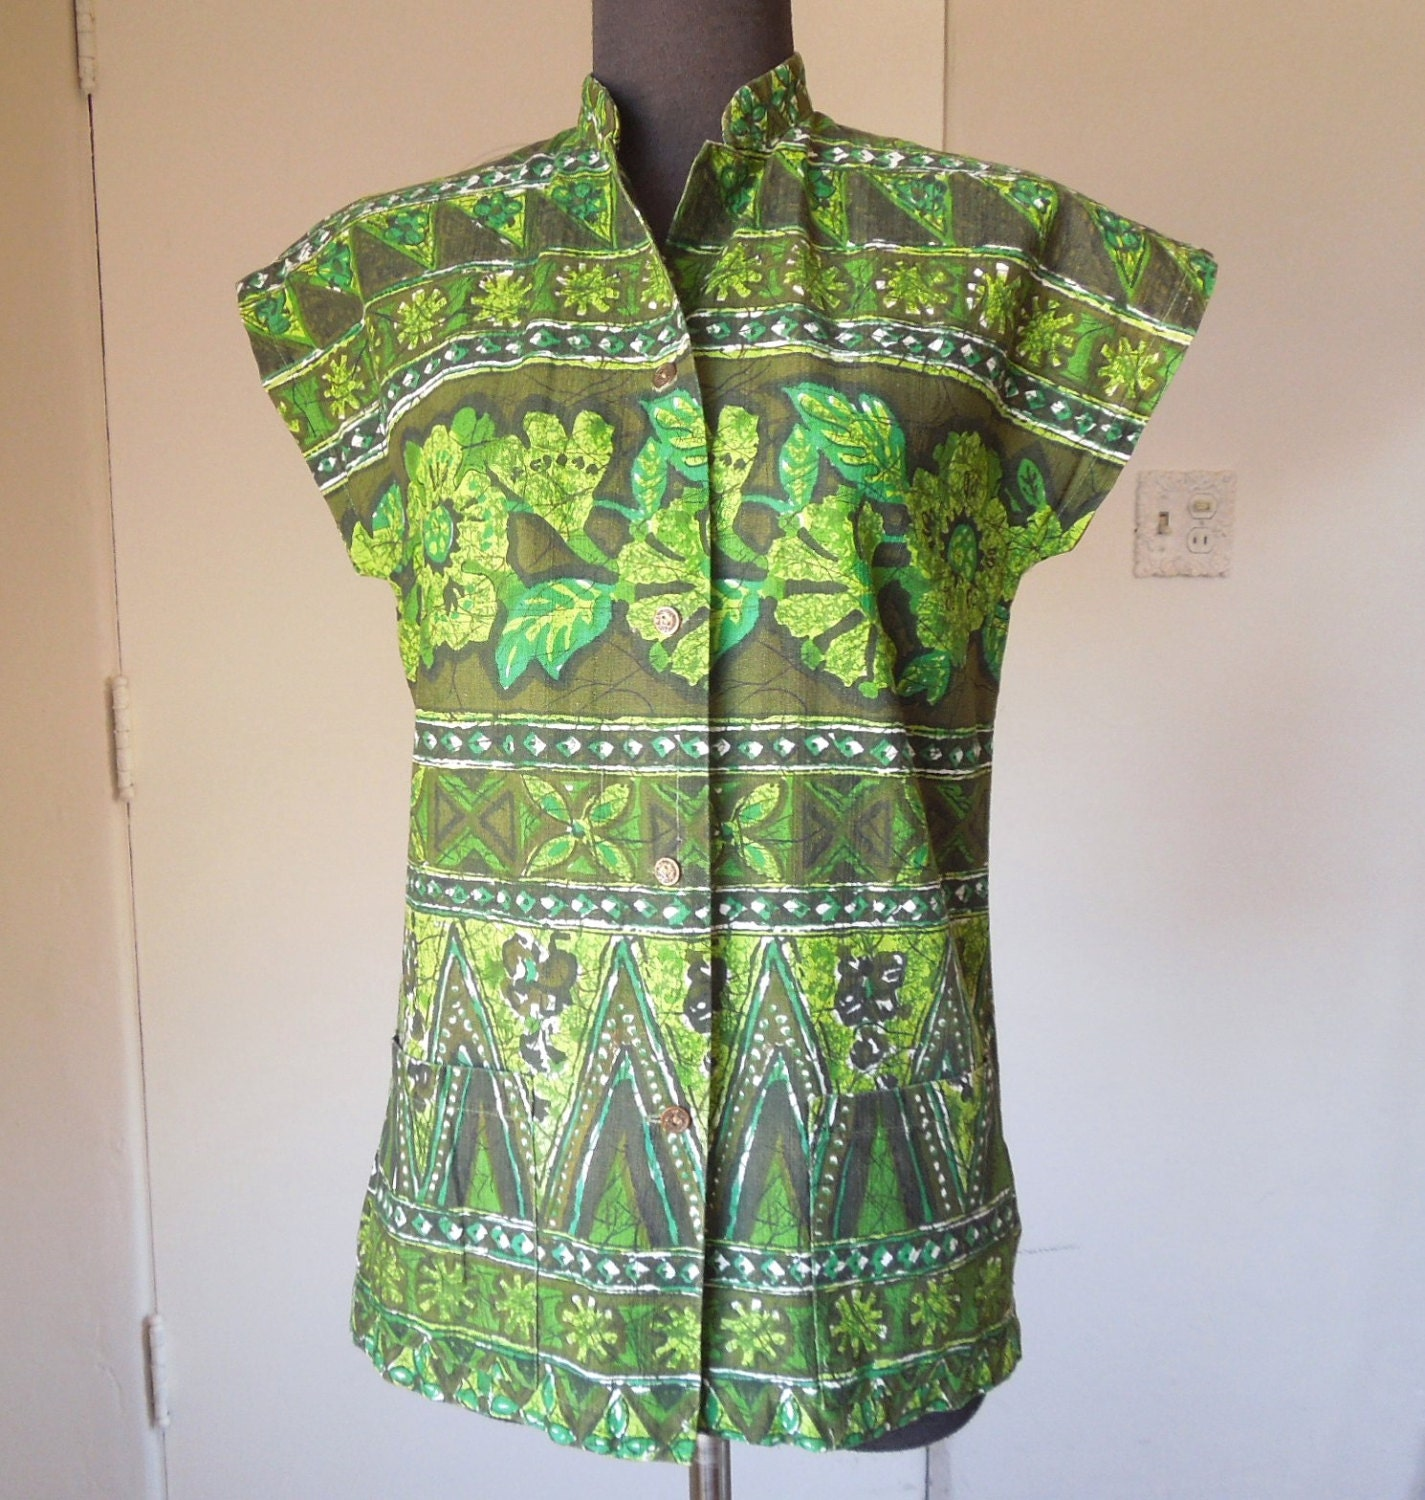 Vintage 60's Tea Timer Shirt, Hawaiian Bark-Cloth, Short Sleeve, Green and White Tropical Floral, TIKI OASIS Size Small